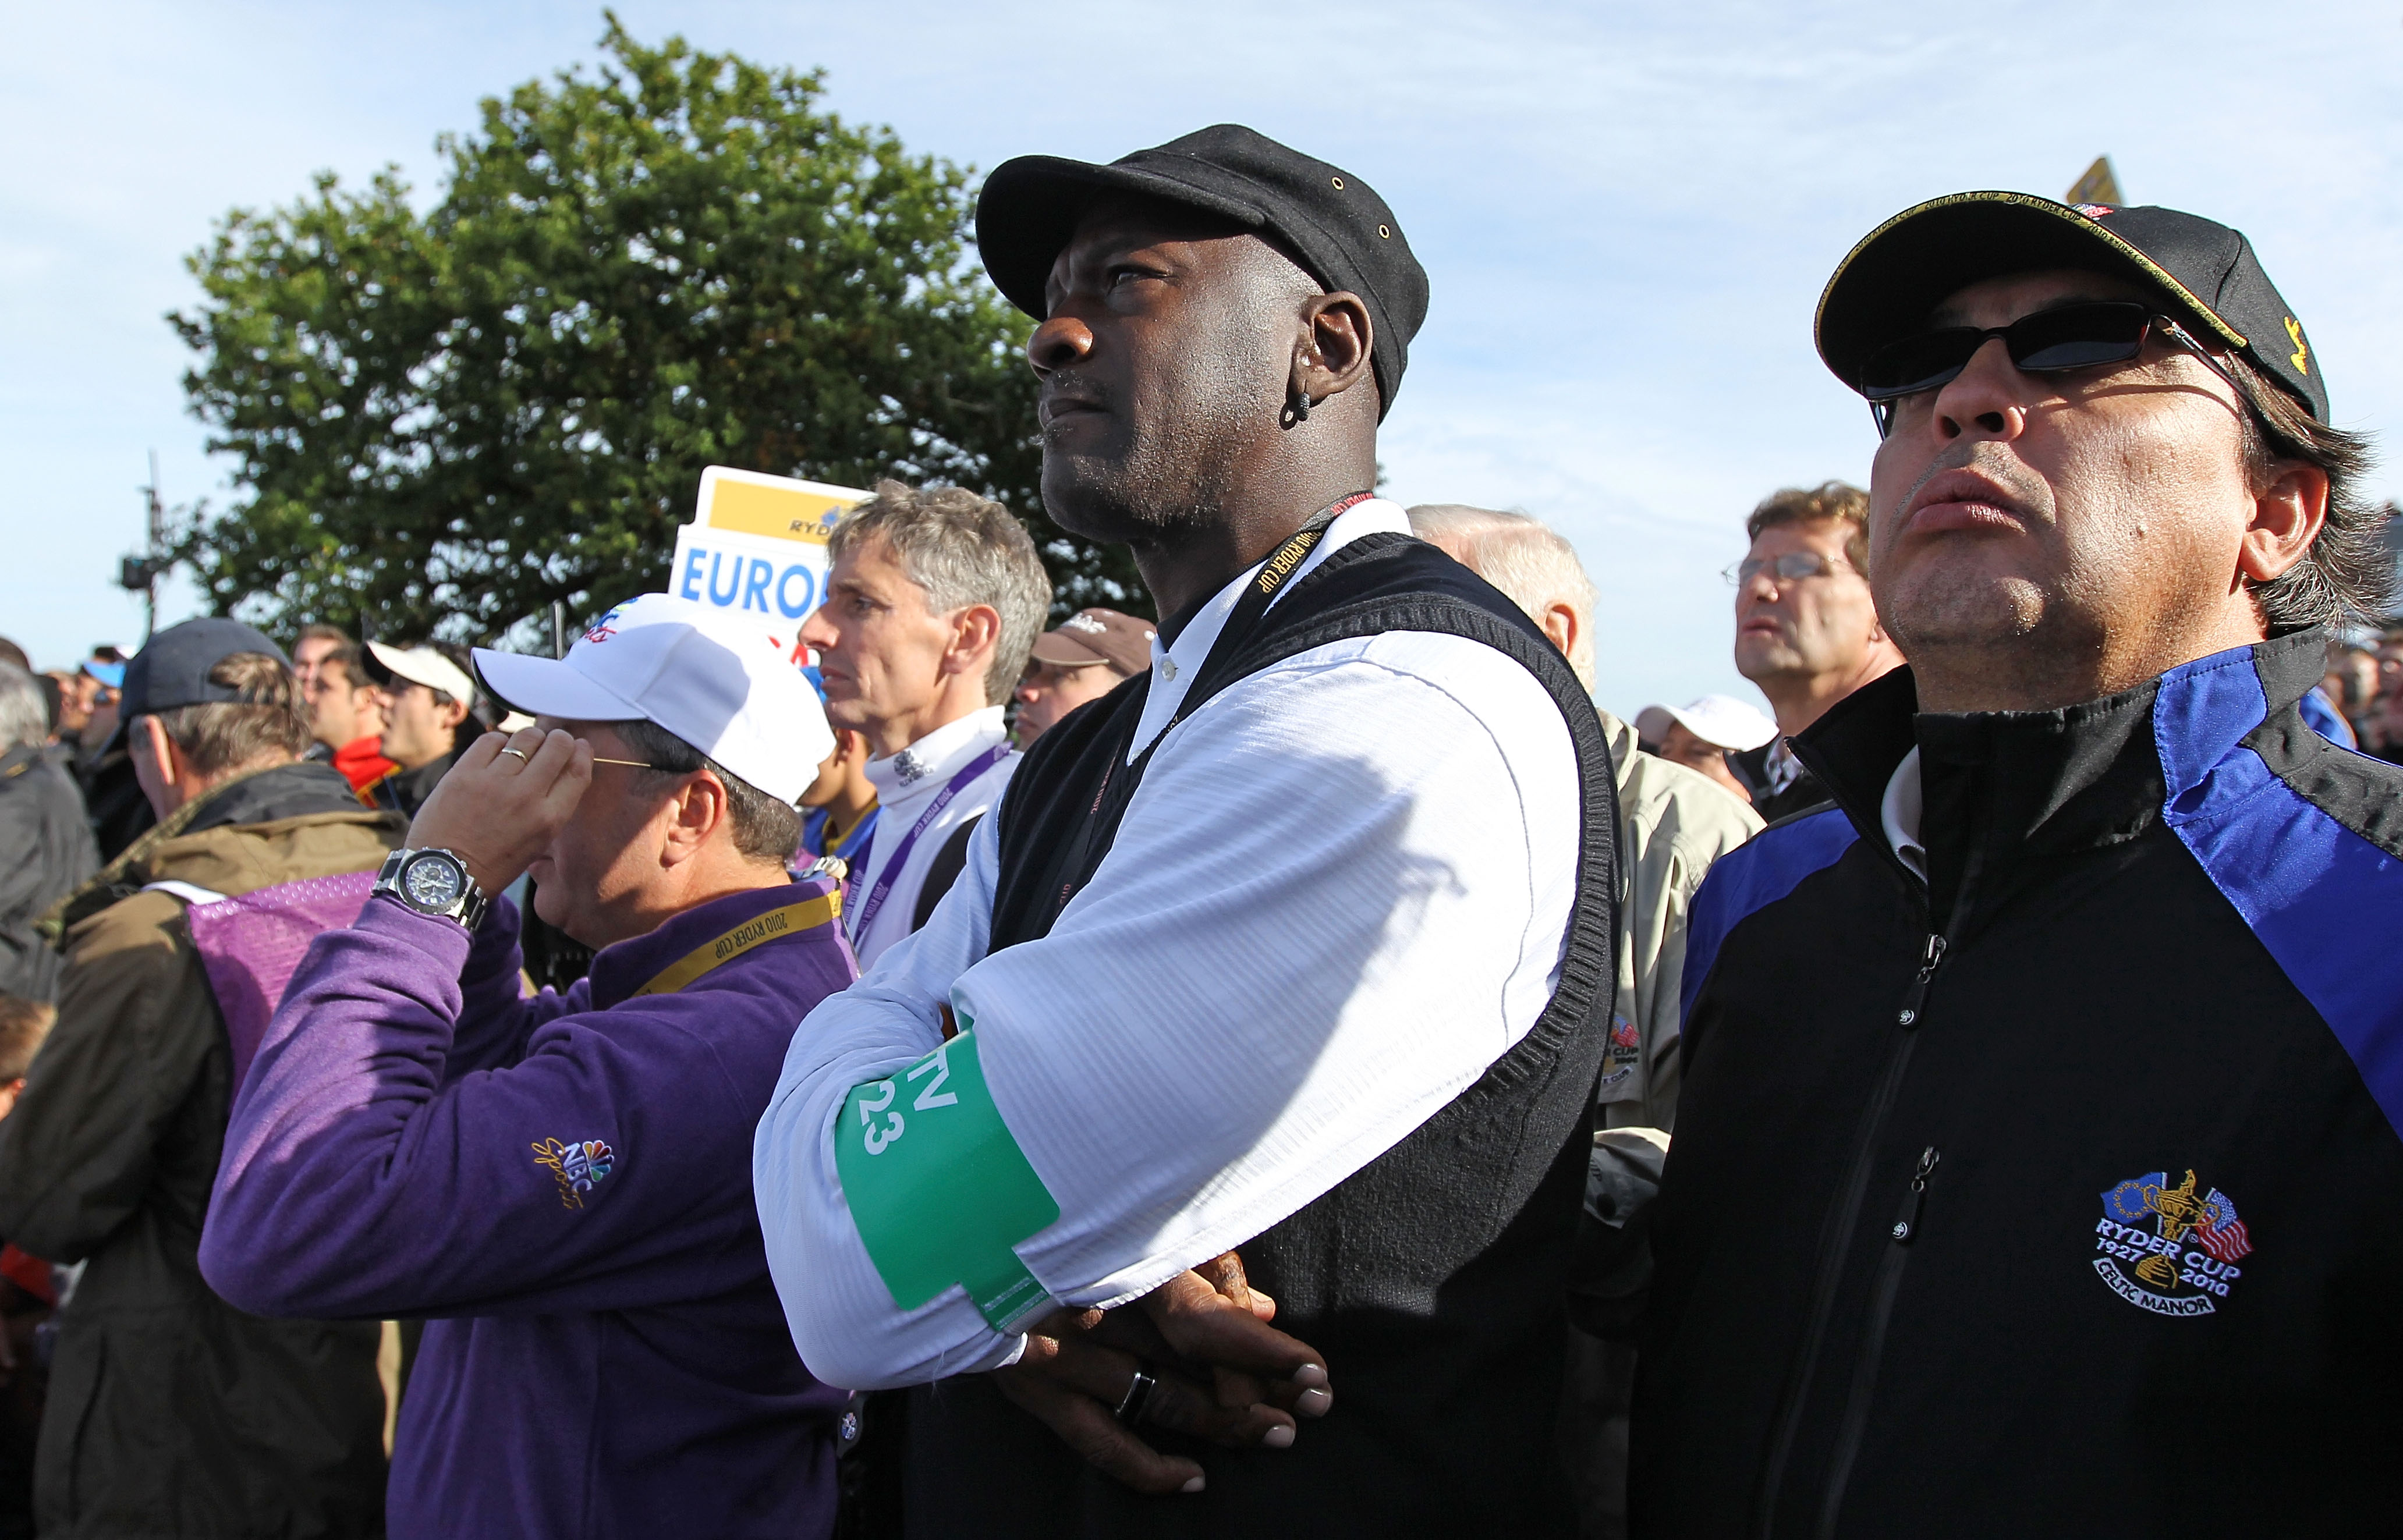 NEWPORT, WALES - OCTOBER 02:  Michael Jordan watches the action during the rescheduled Morning Fourball Matches during the 2010 Ryder Cup at the Celtic Manor Resort on October 2, 2010 in Newport, Wales.  (Photo by Andy Lyons/Getty Images)